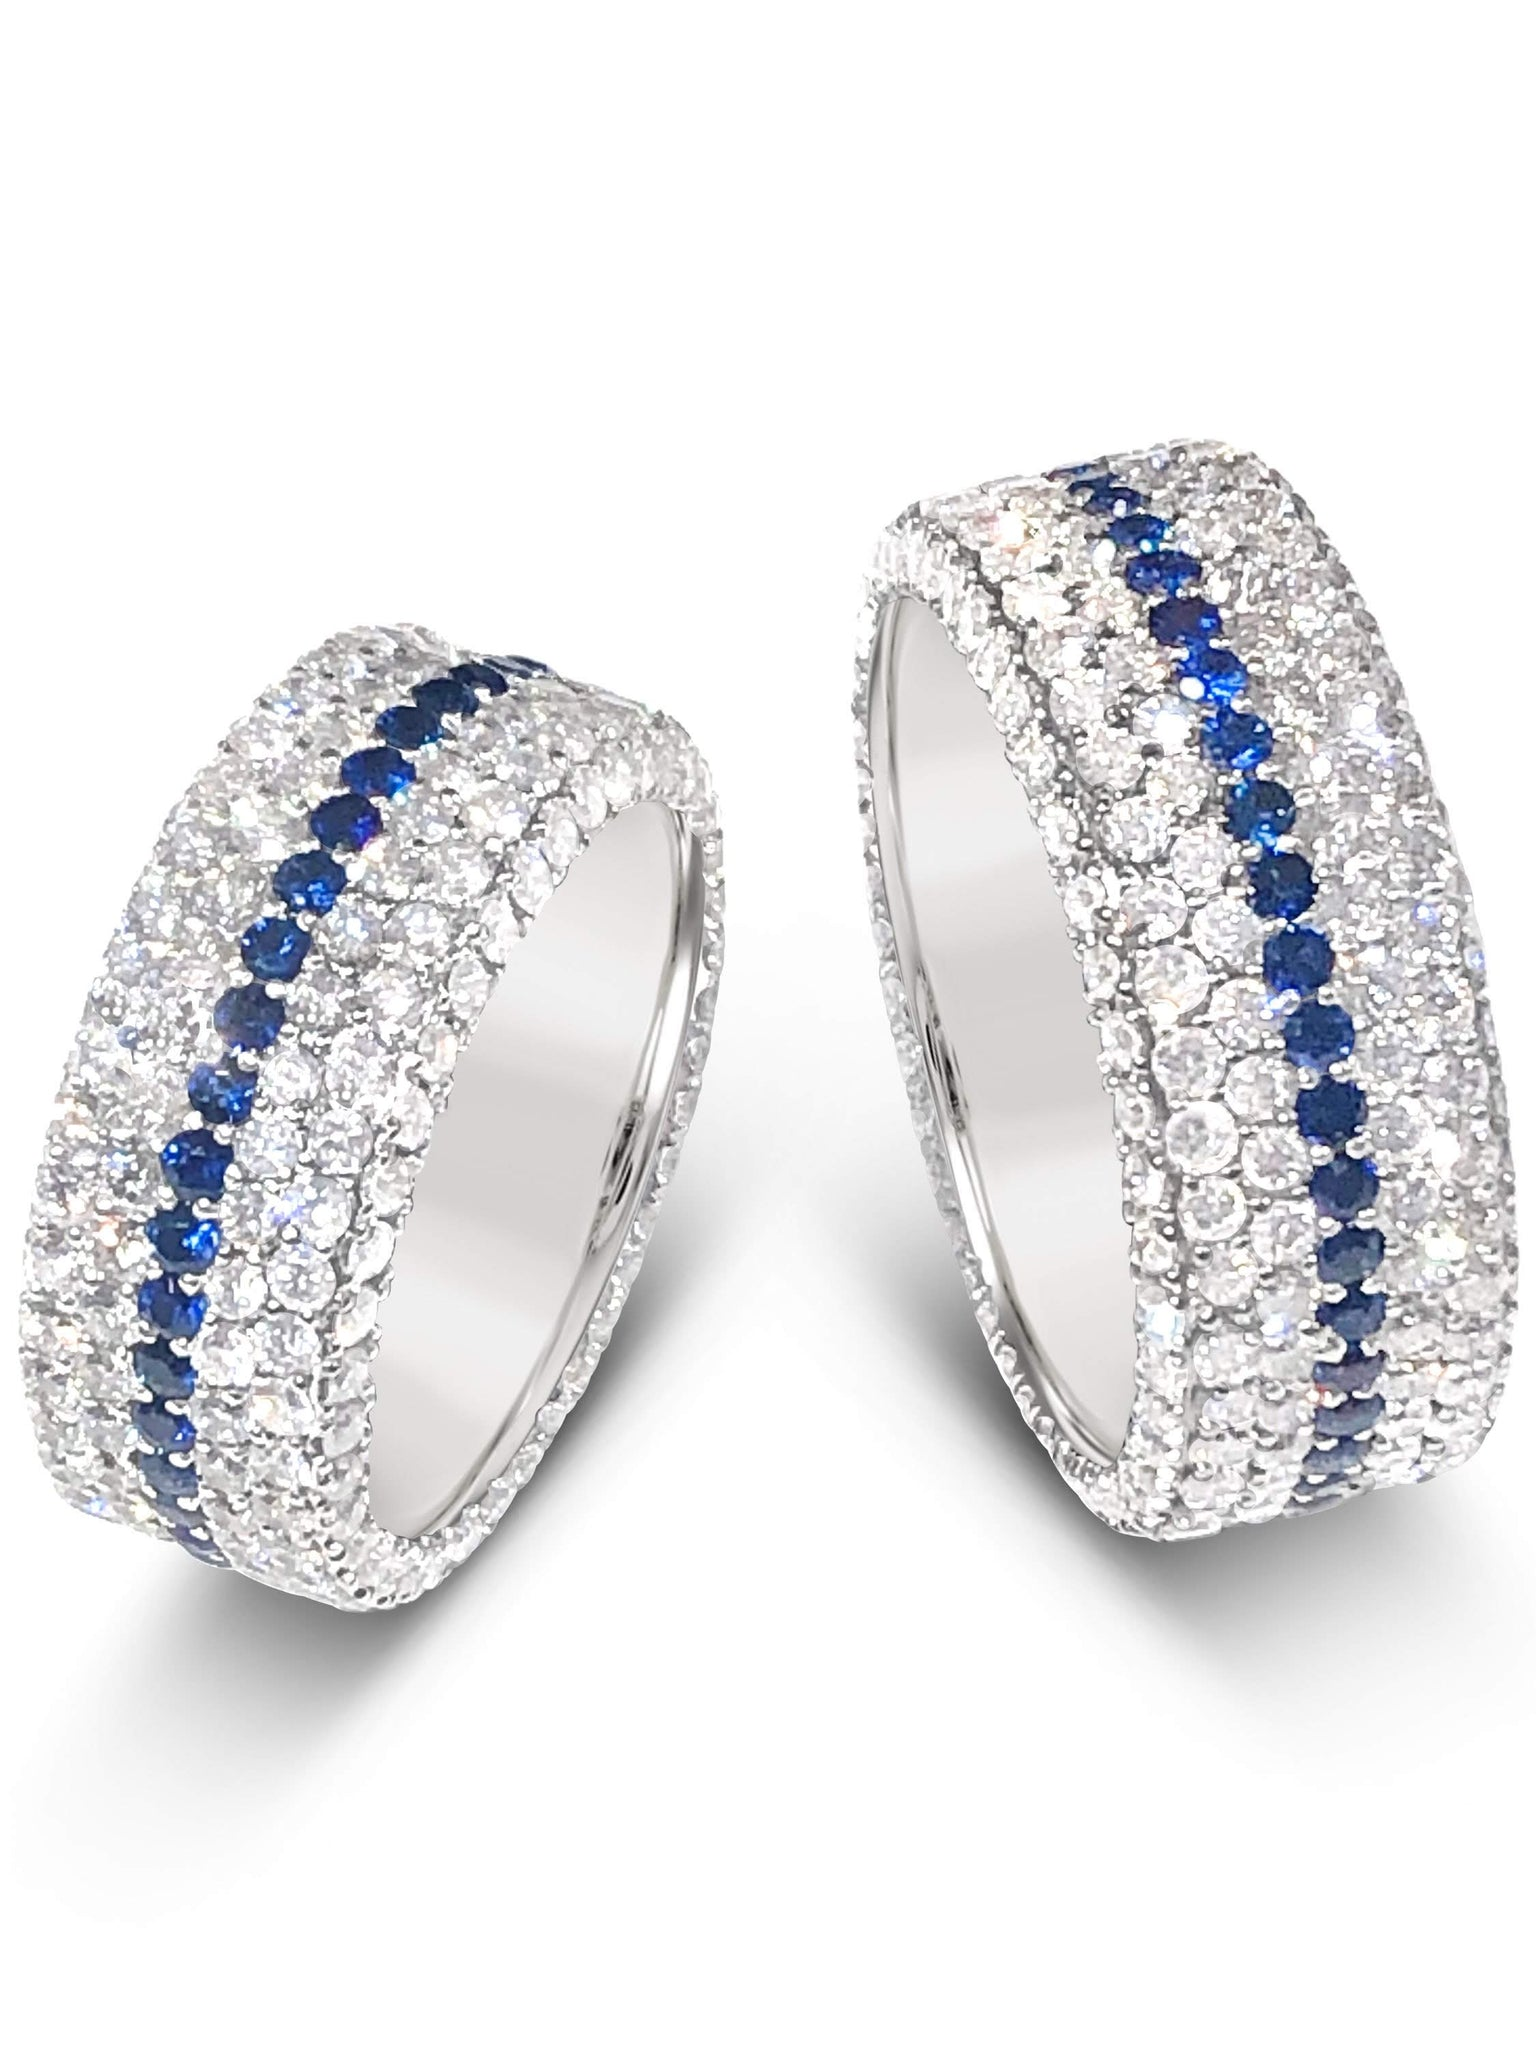 6598s white diamond band with blue sapphires, handmade by Michael's Custom Jewelers